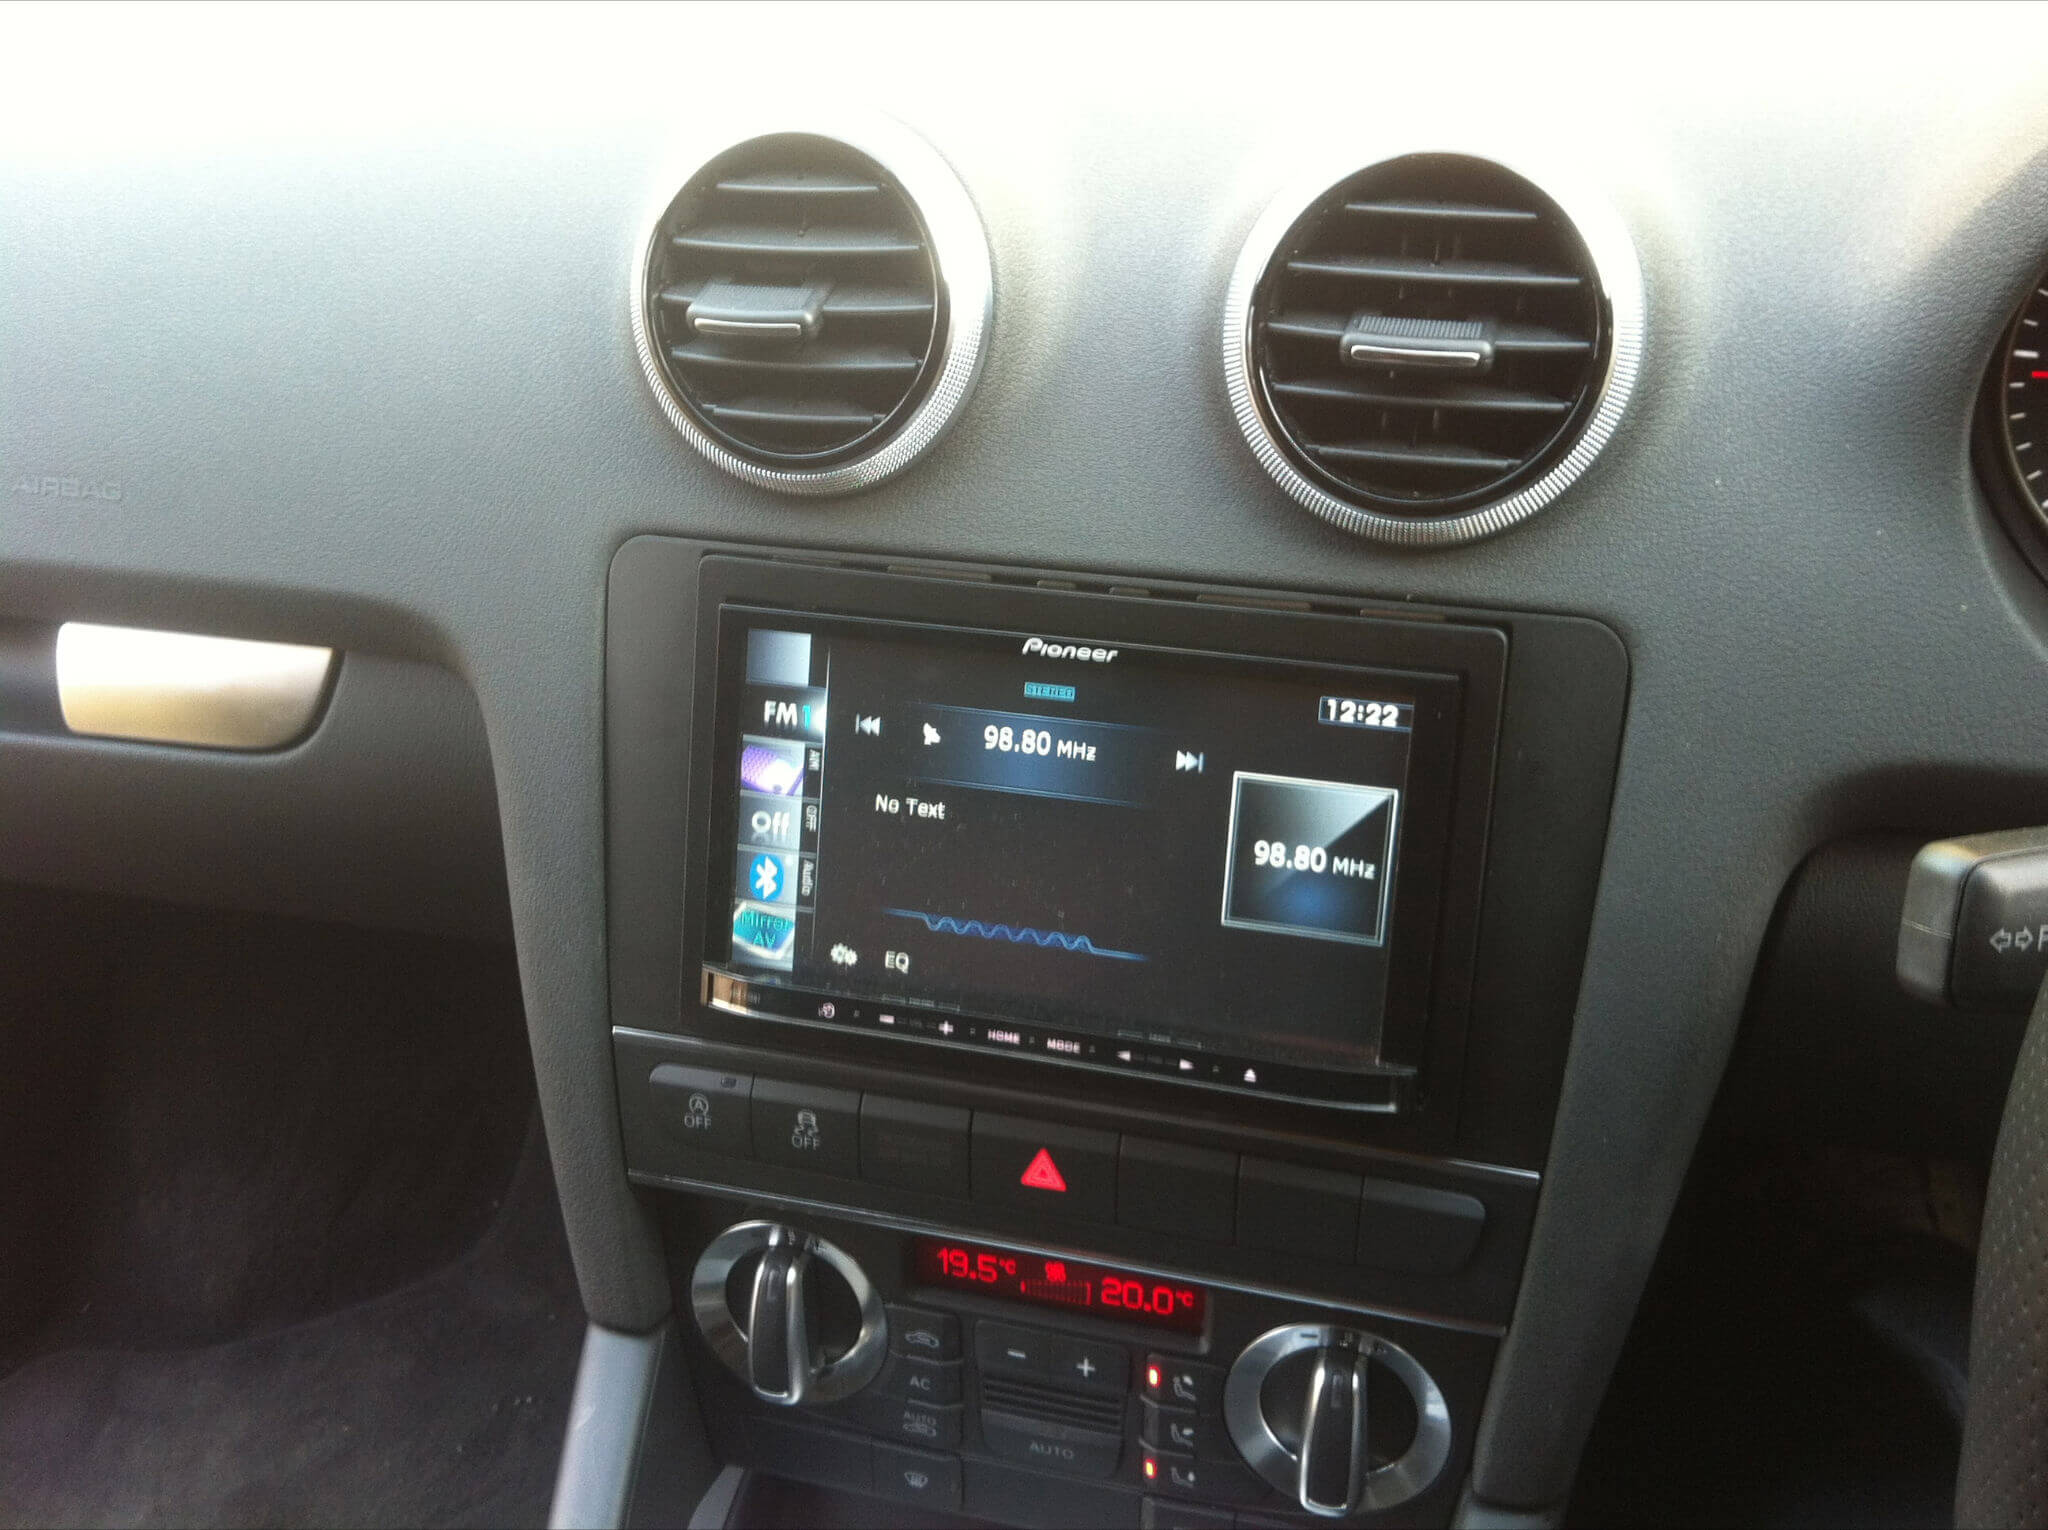 Audi-A3-with-Pioneer-head-unit-installed